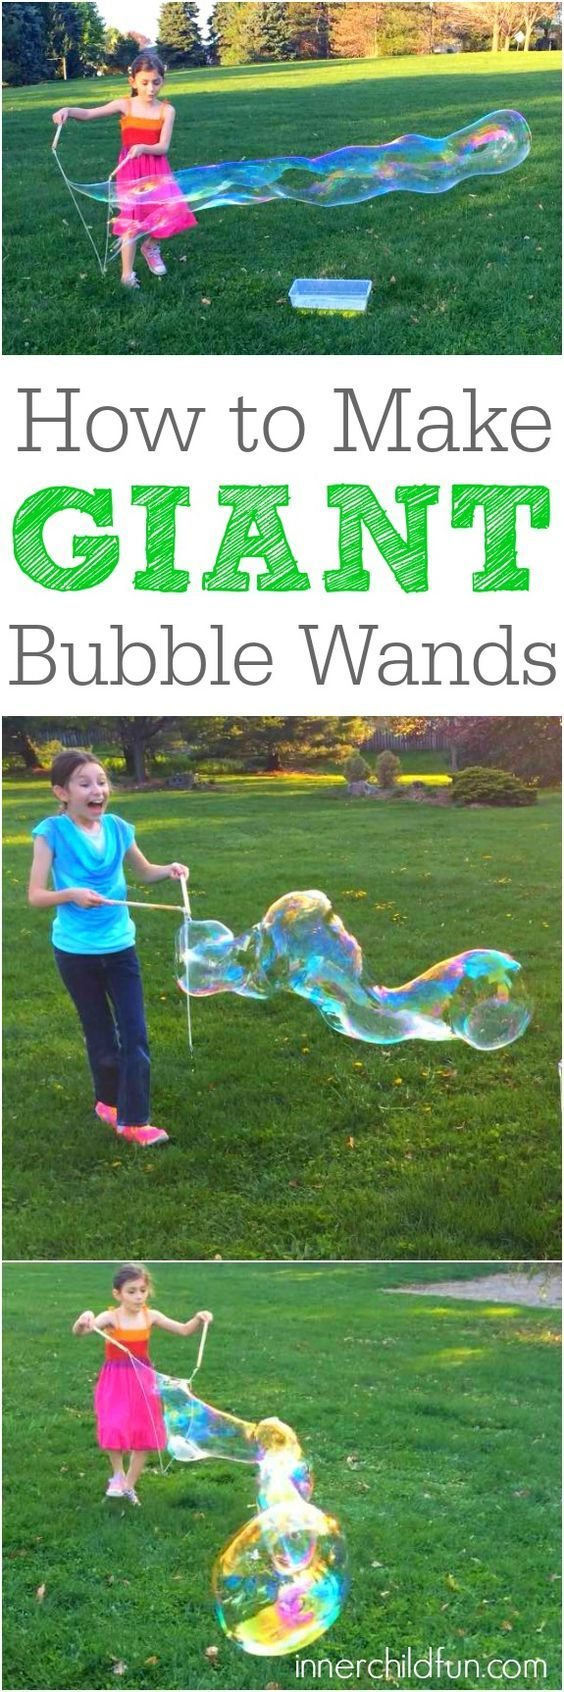 How to Make Giant Bubble Wands - Awesome! Can't wait to try this!